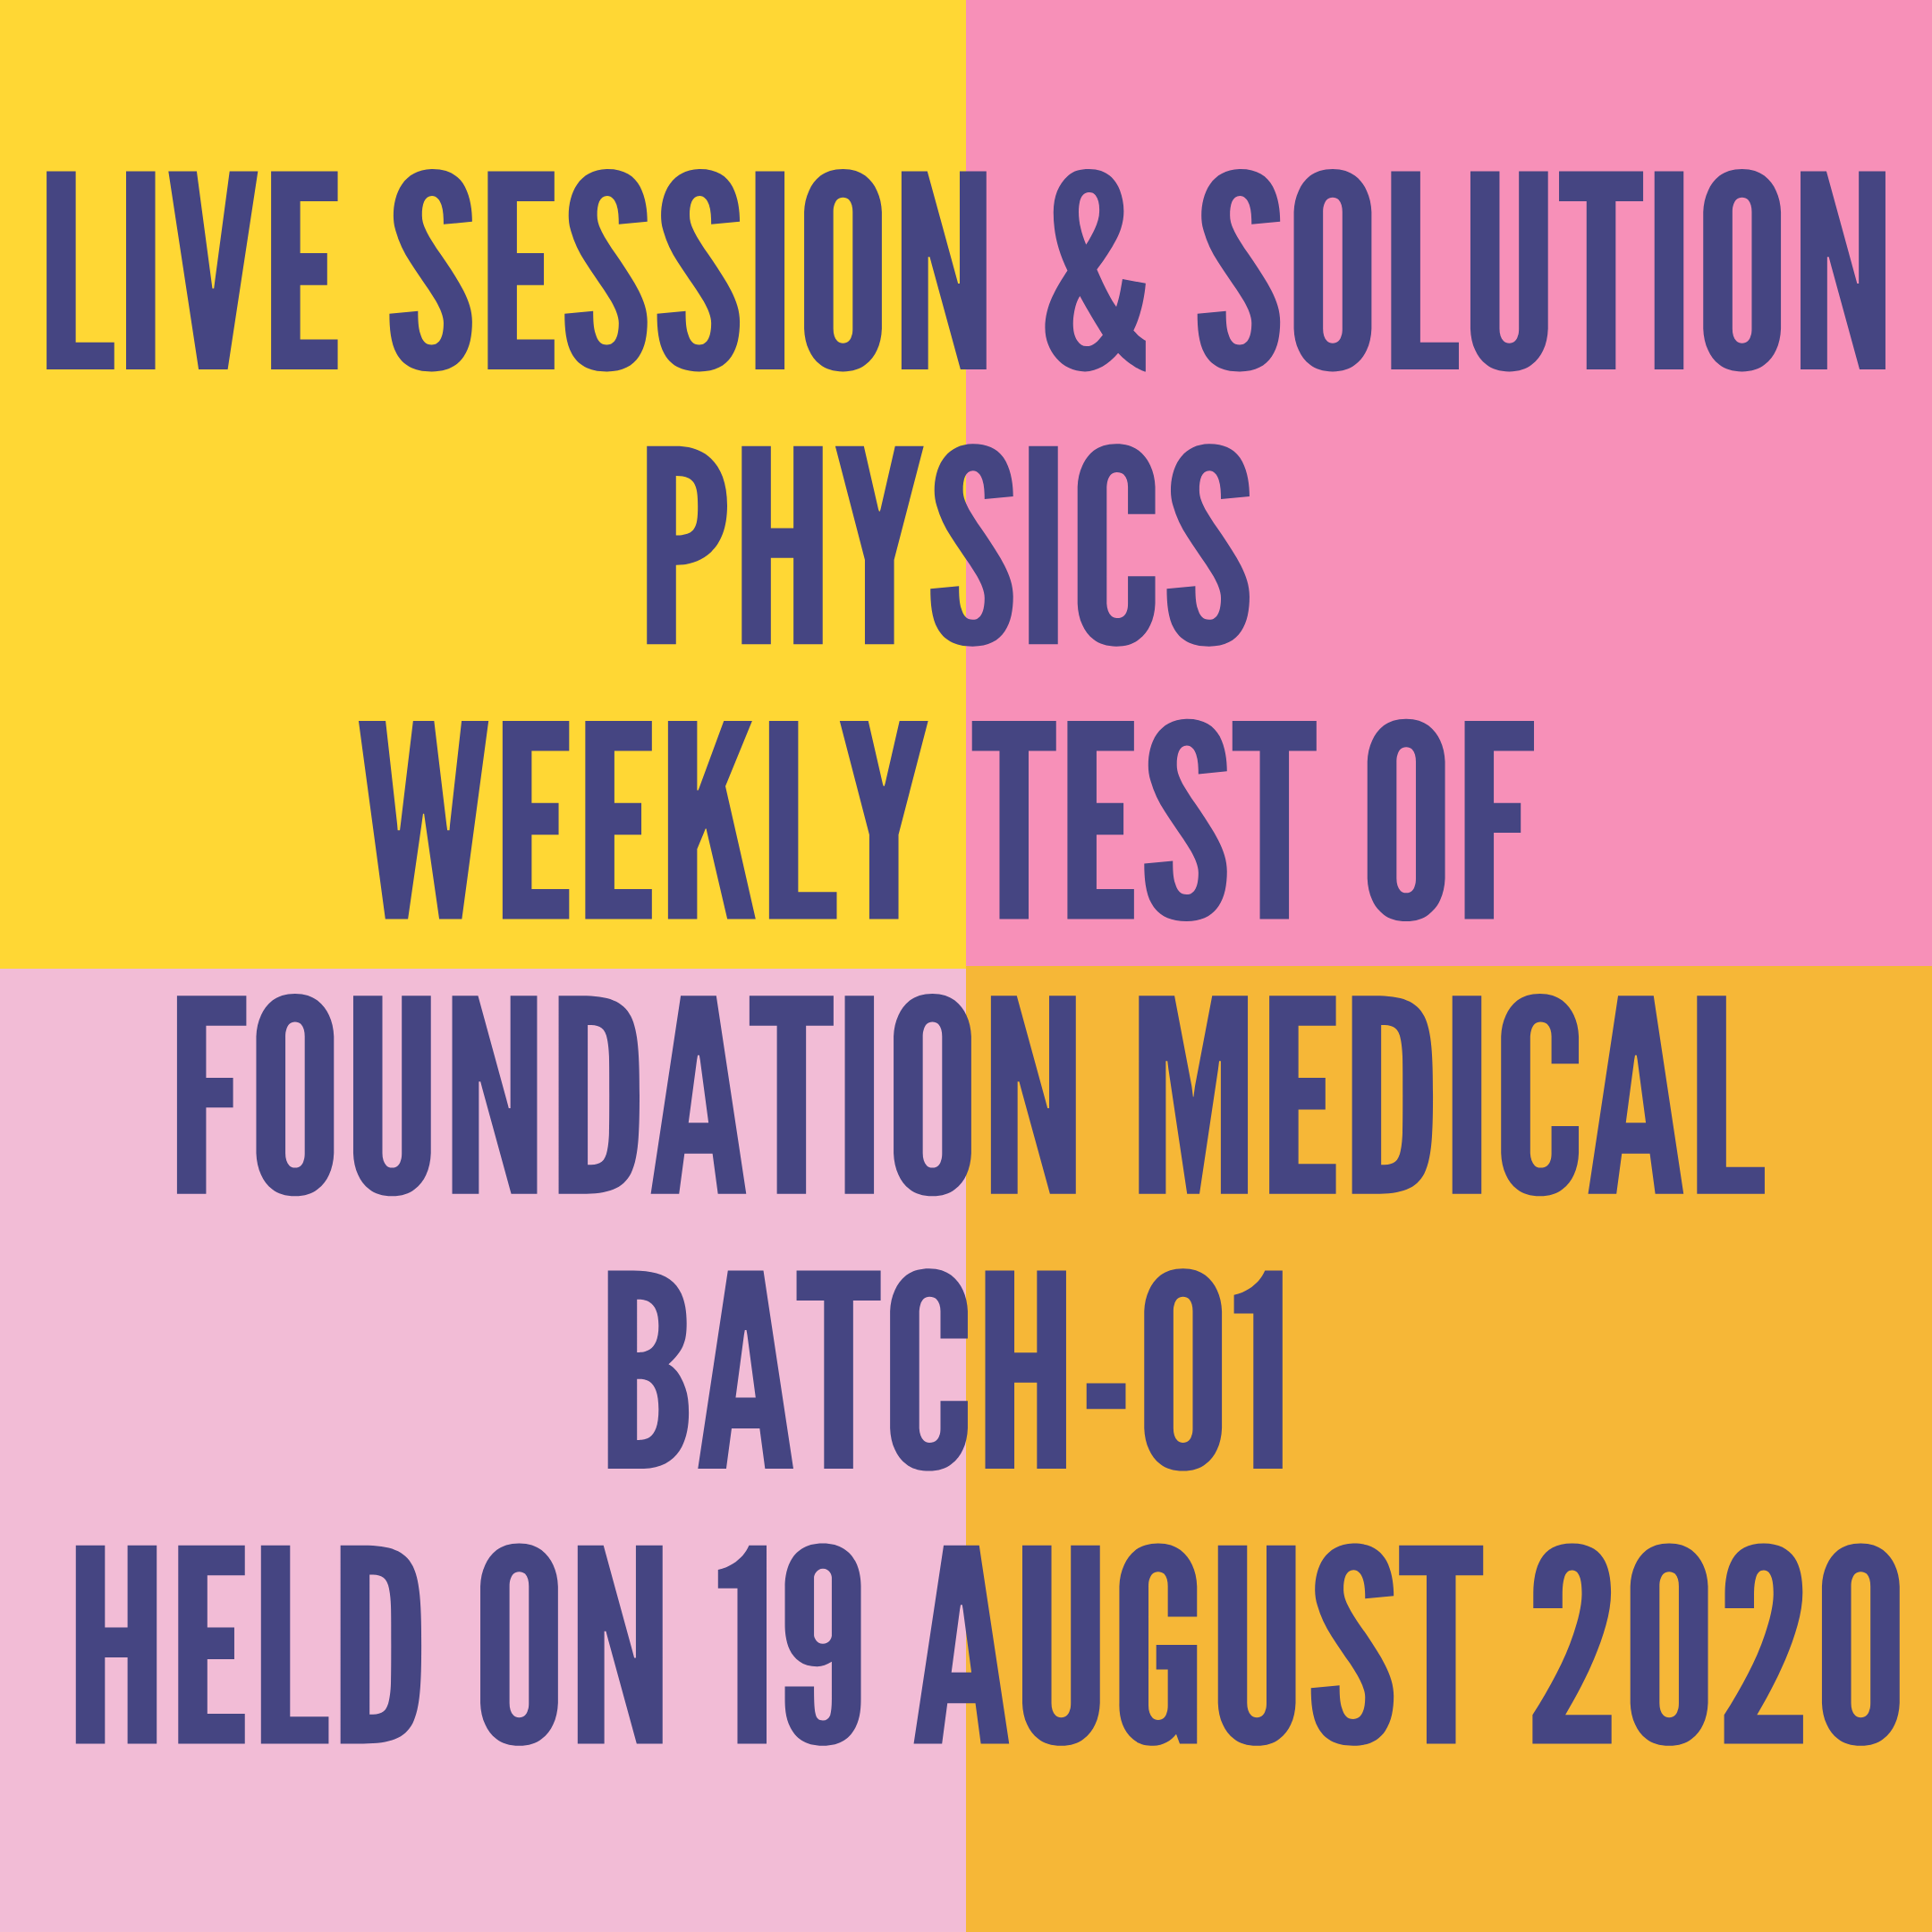 LIVE SESSION & SOLUTION PHYSICS WEEKLY TEST OF FOUNDATION MEDICAL BATCH-01  HELD ON 19 AUGUST 2020